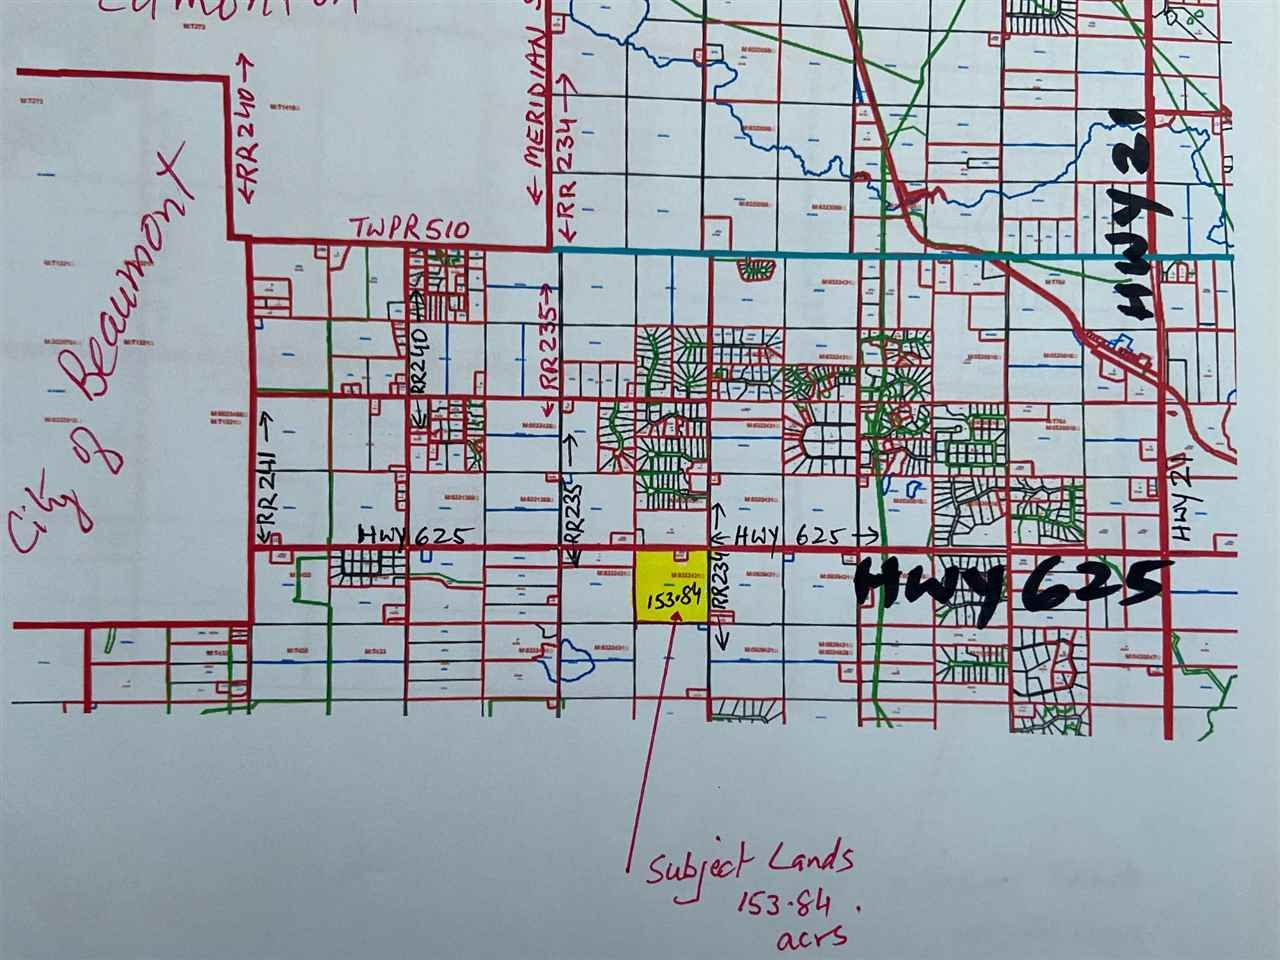 Main Photo: Hwy 625 & RR 234: Rural Leduc County Rural Land/Vacant Lot for sale : MLS®# E4224351